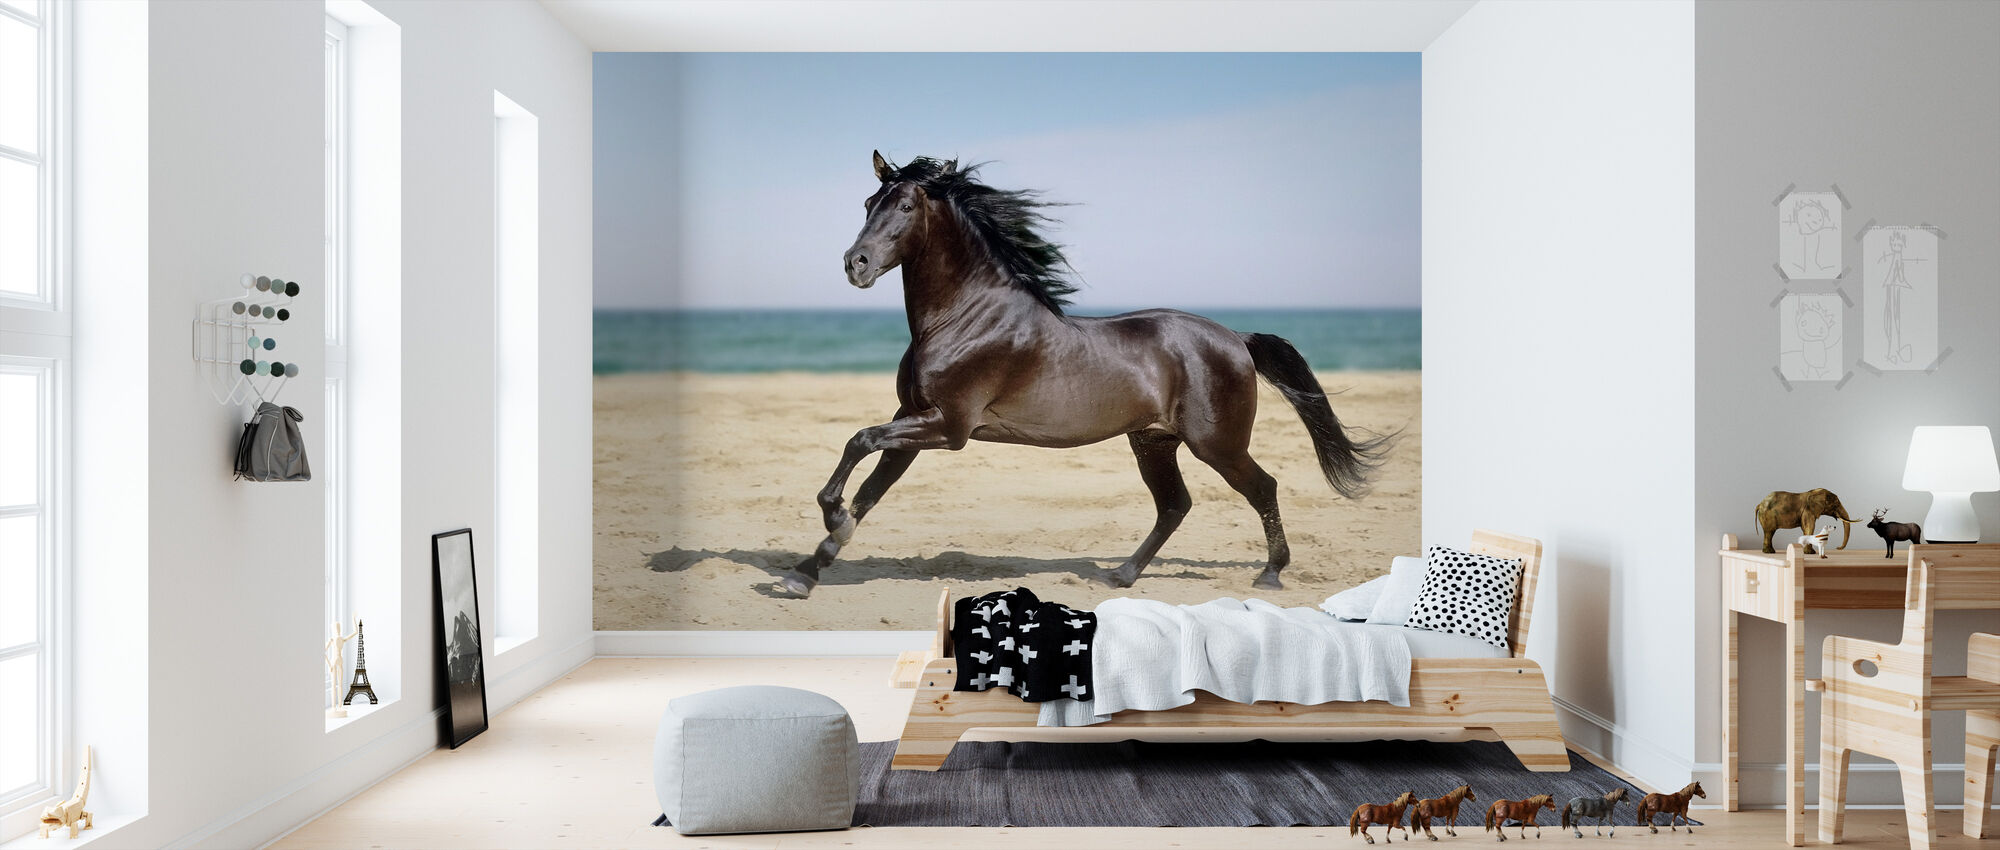 Beach Horse - Wallpaper - Kids Room